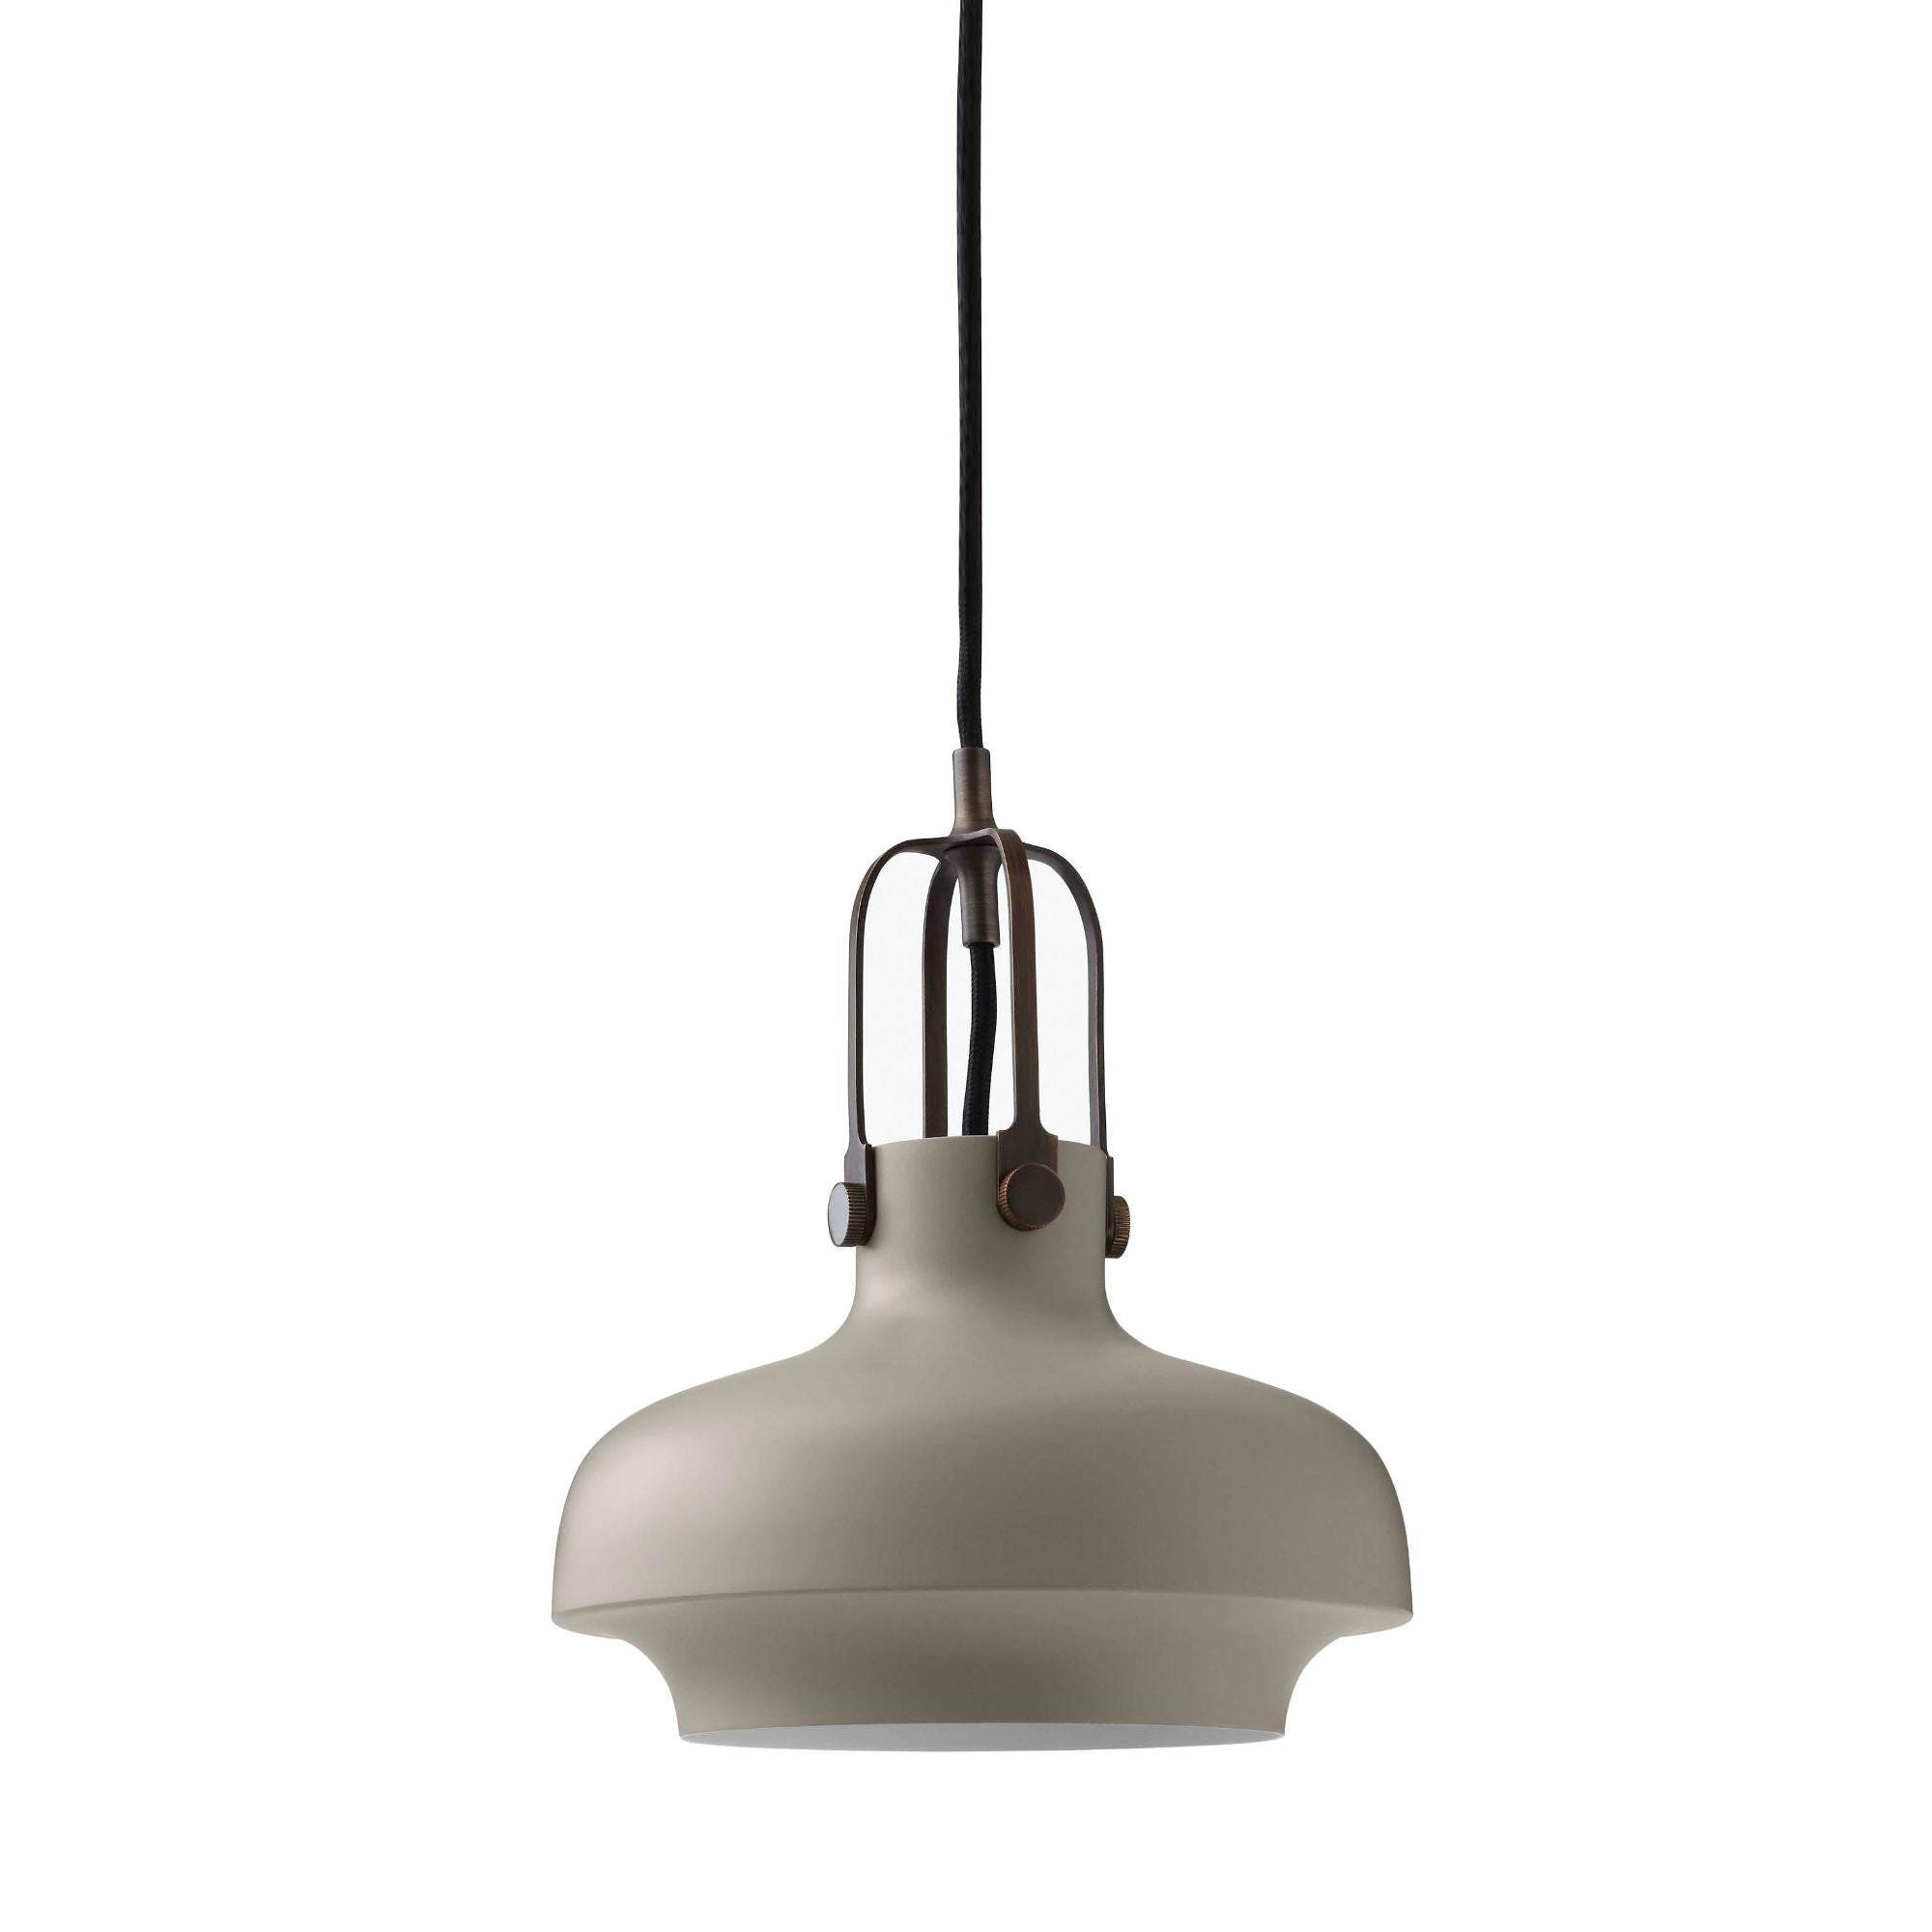 &Tradition SC6 Copenhagen pendant light, matt stone - bronzed brass suspension